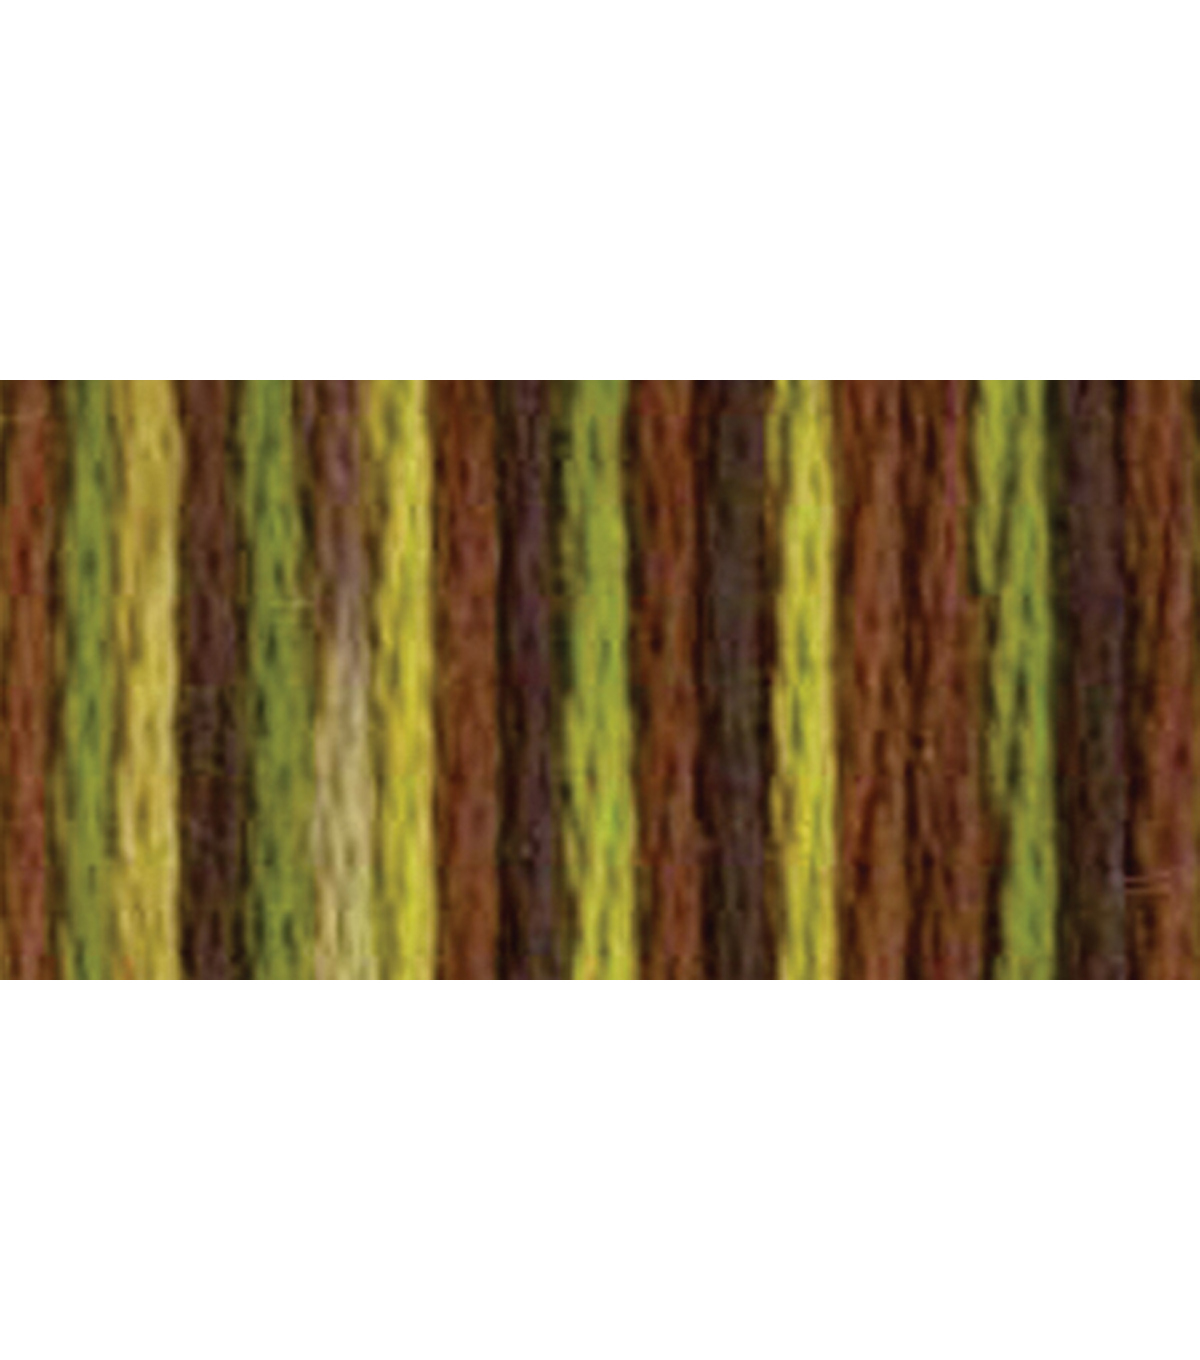 DMC Pearl Cotton Variation Thread 27 Yds Size 5, Camouflage